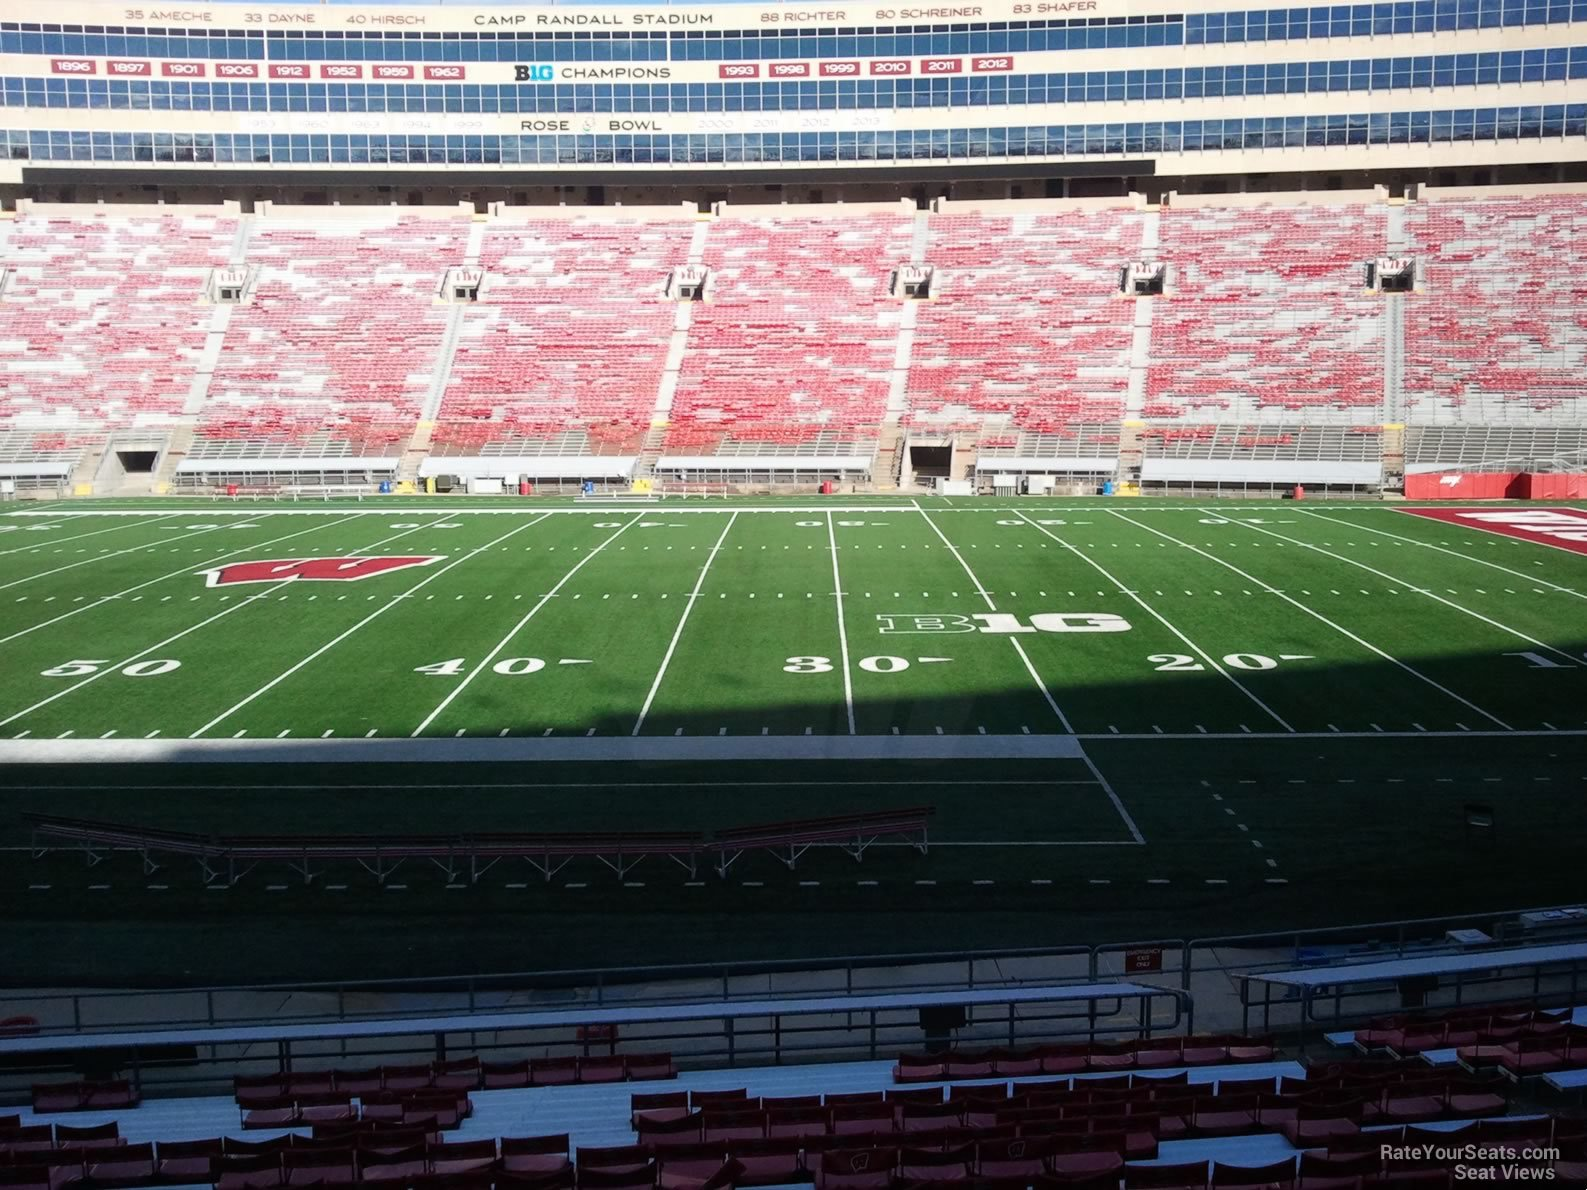 Seat View for Camp Randall Stadium Section D, Row 30